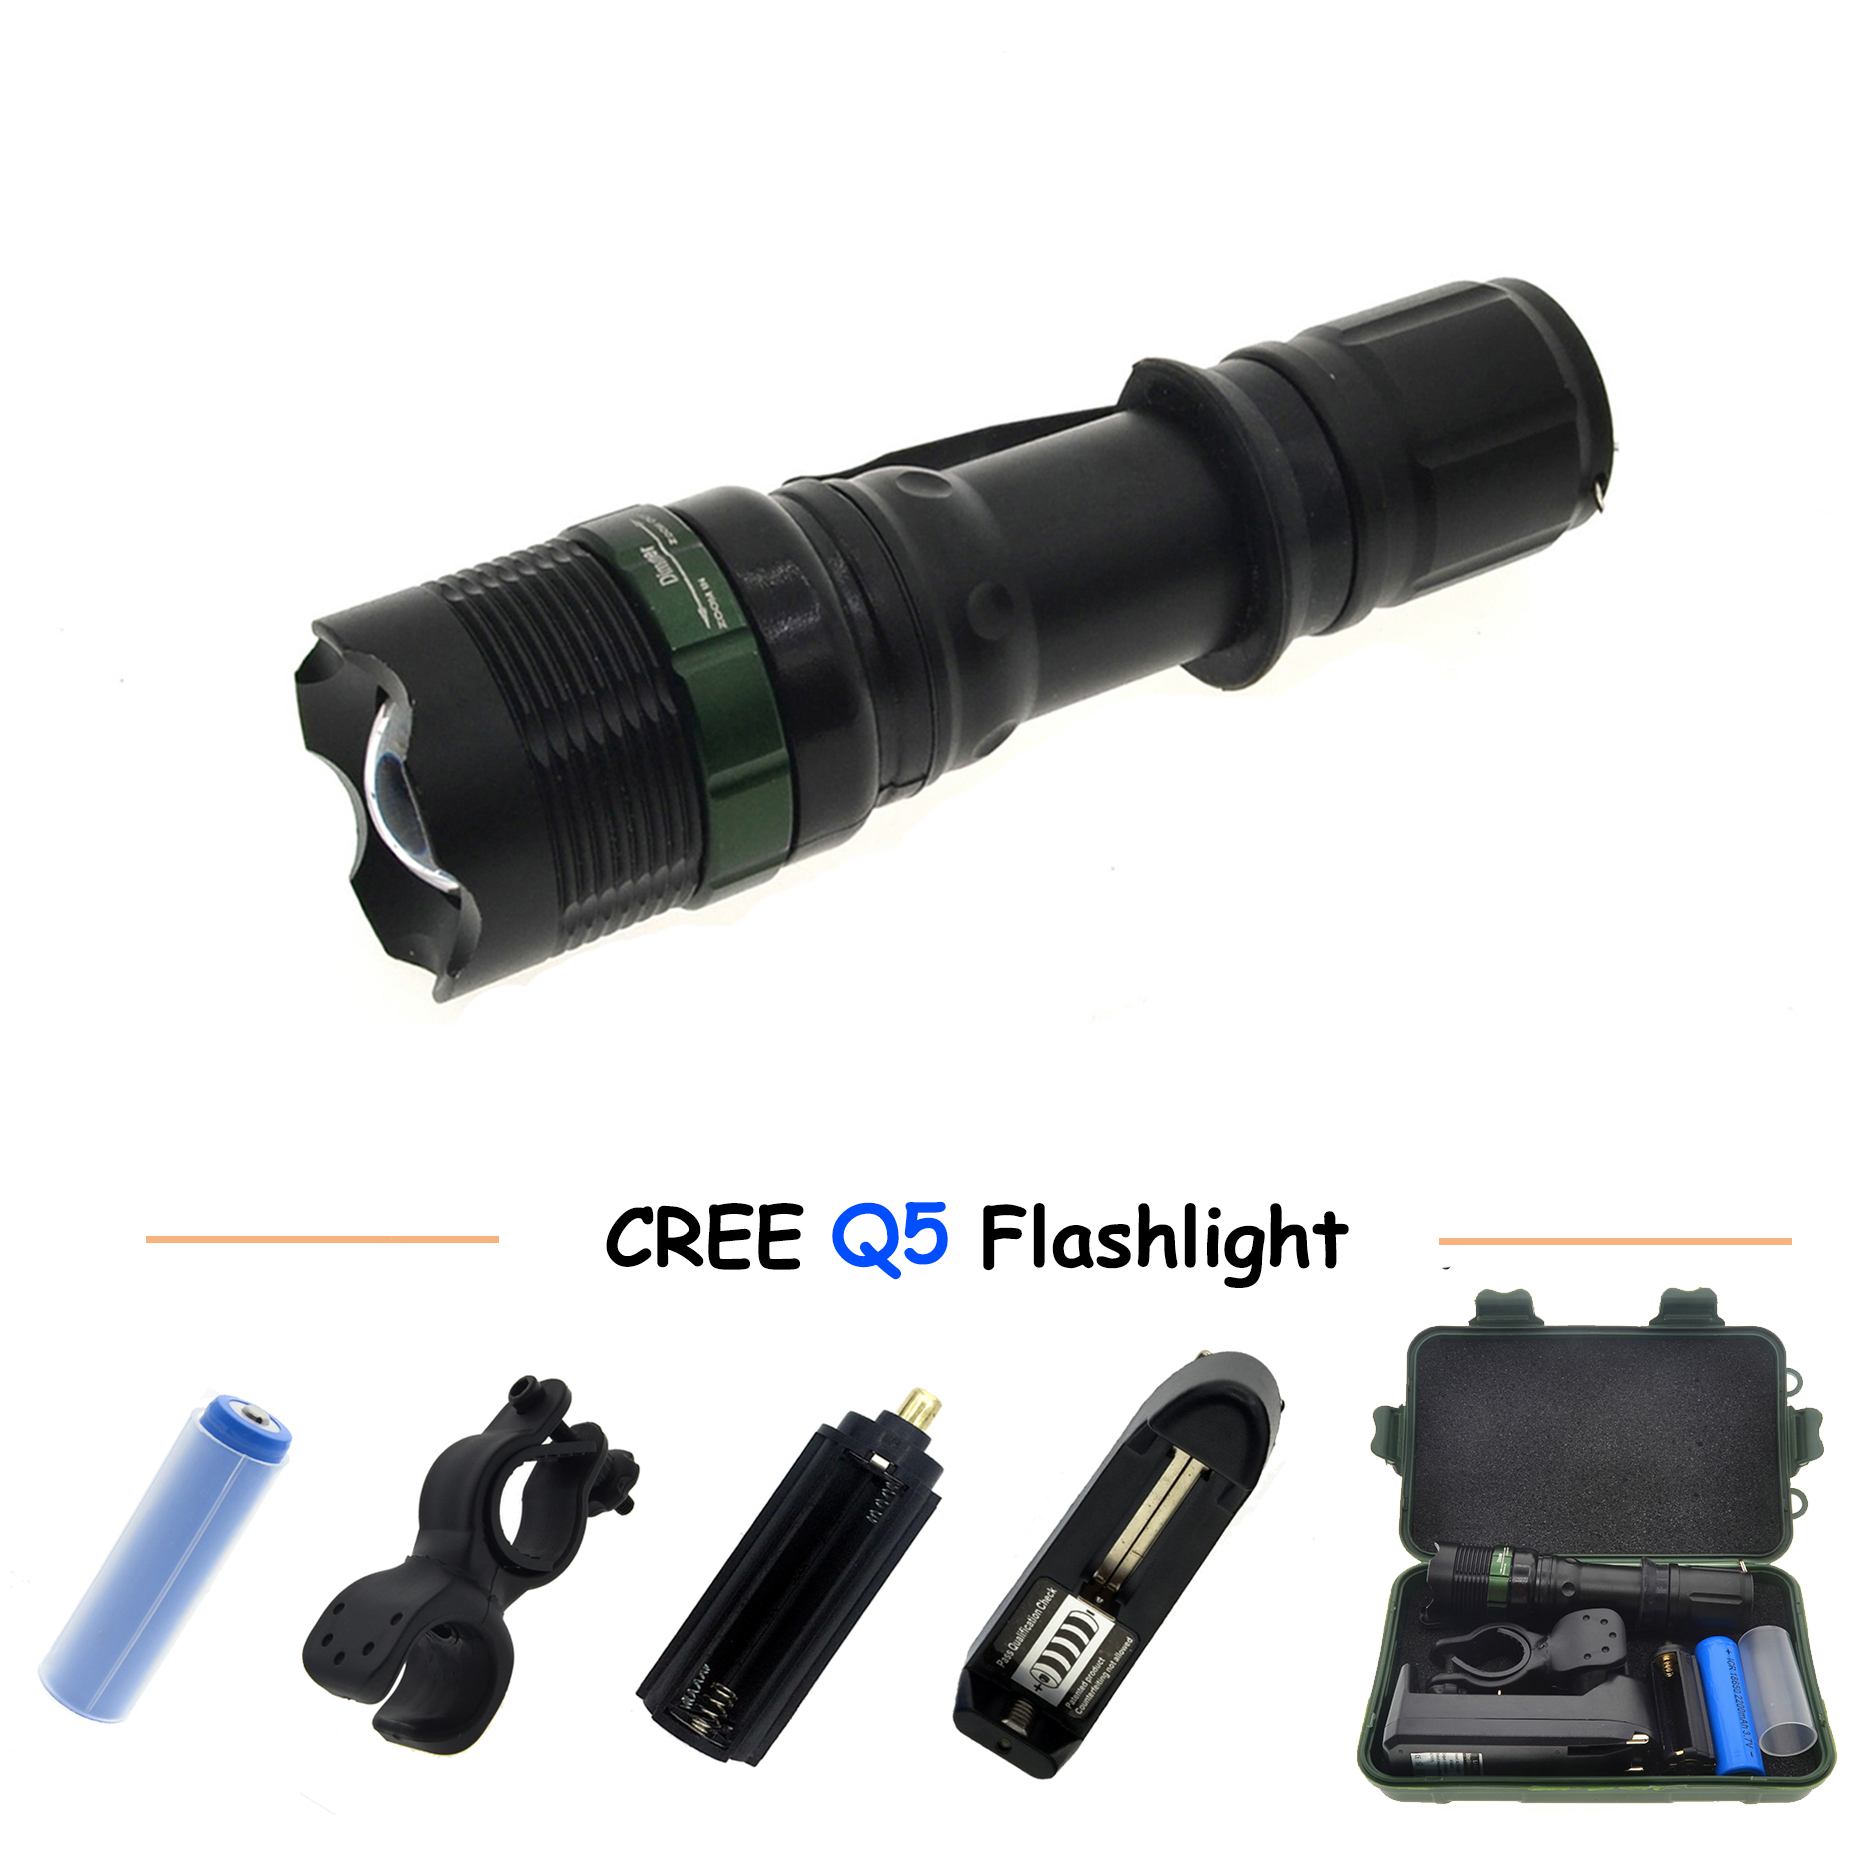 Flashlight CREE Q5 LED Torch Zoomable Cree LED Flashlight Torch light Recharger + 18650 battery + gift box